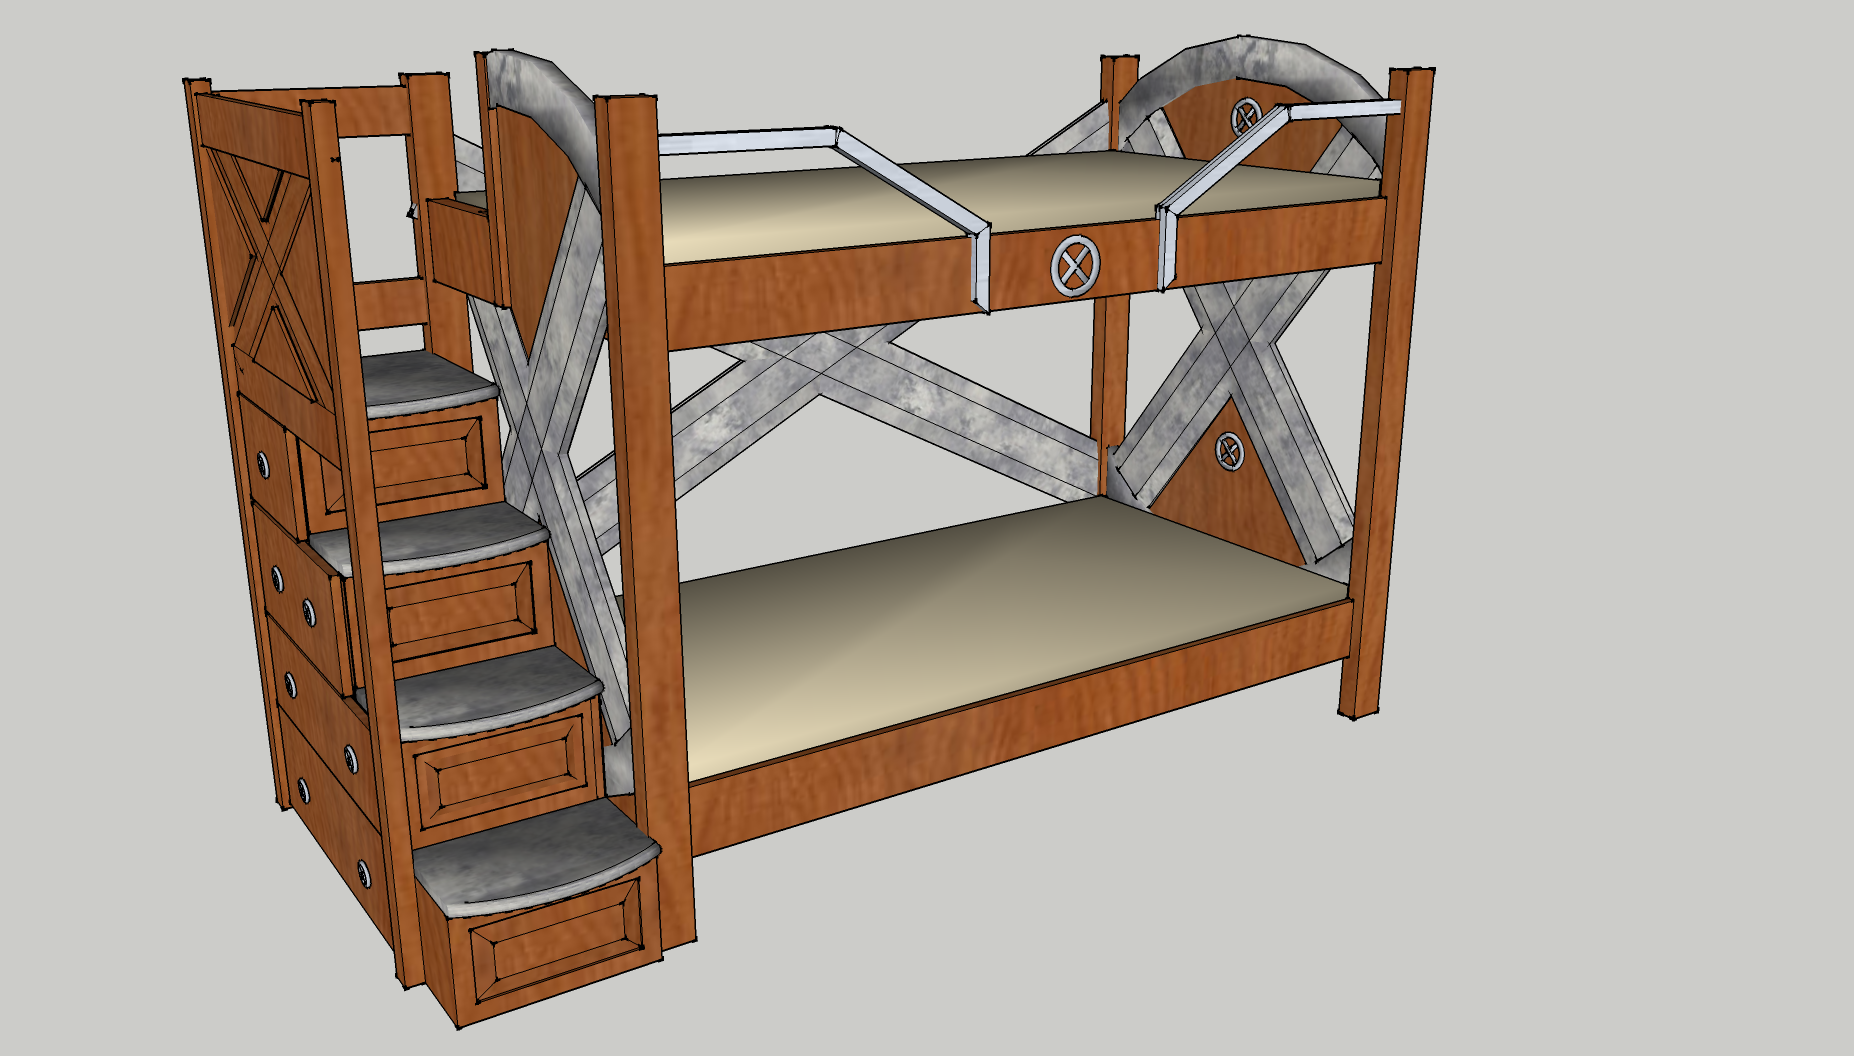 X Men Bunk Bed 1 A Bunk Bed For My Superheroes By